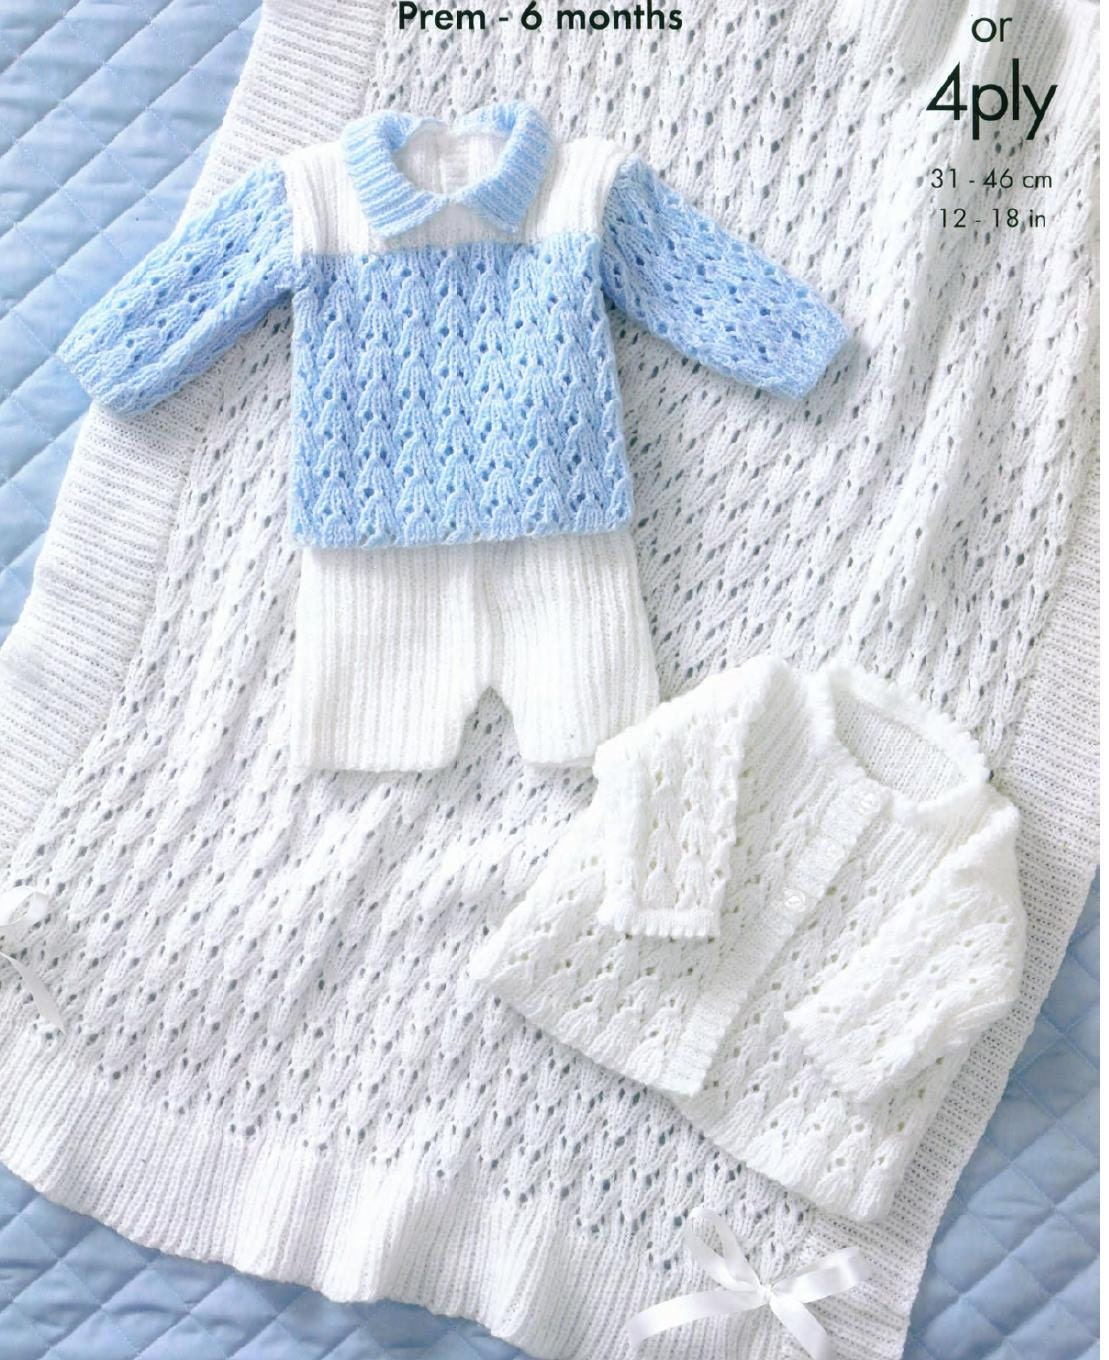 Knitting Pattern For Bay Shawl : Baby Knitting PATTERN Jacket Shawl Sweater and Shorts